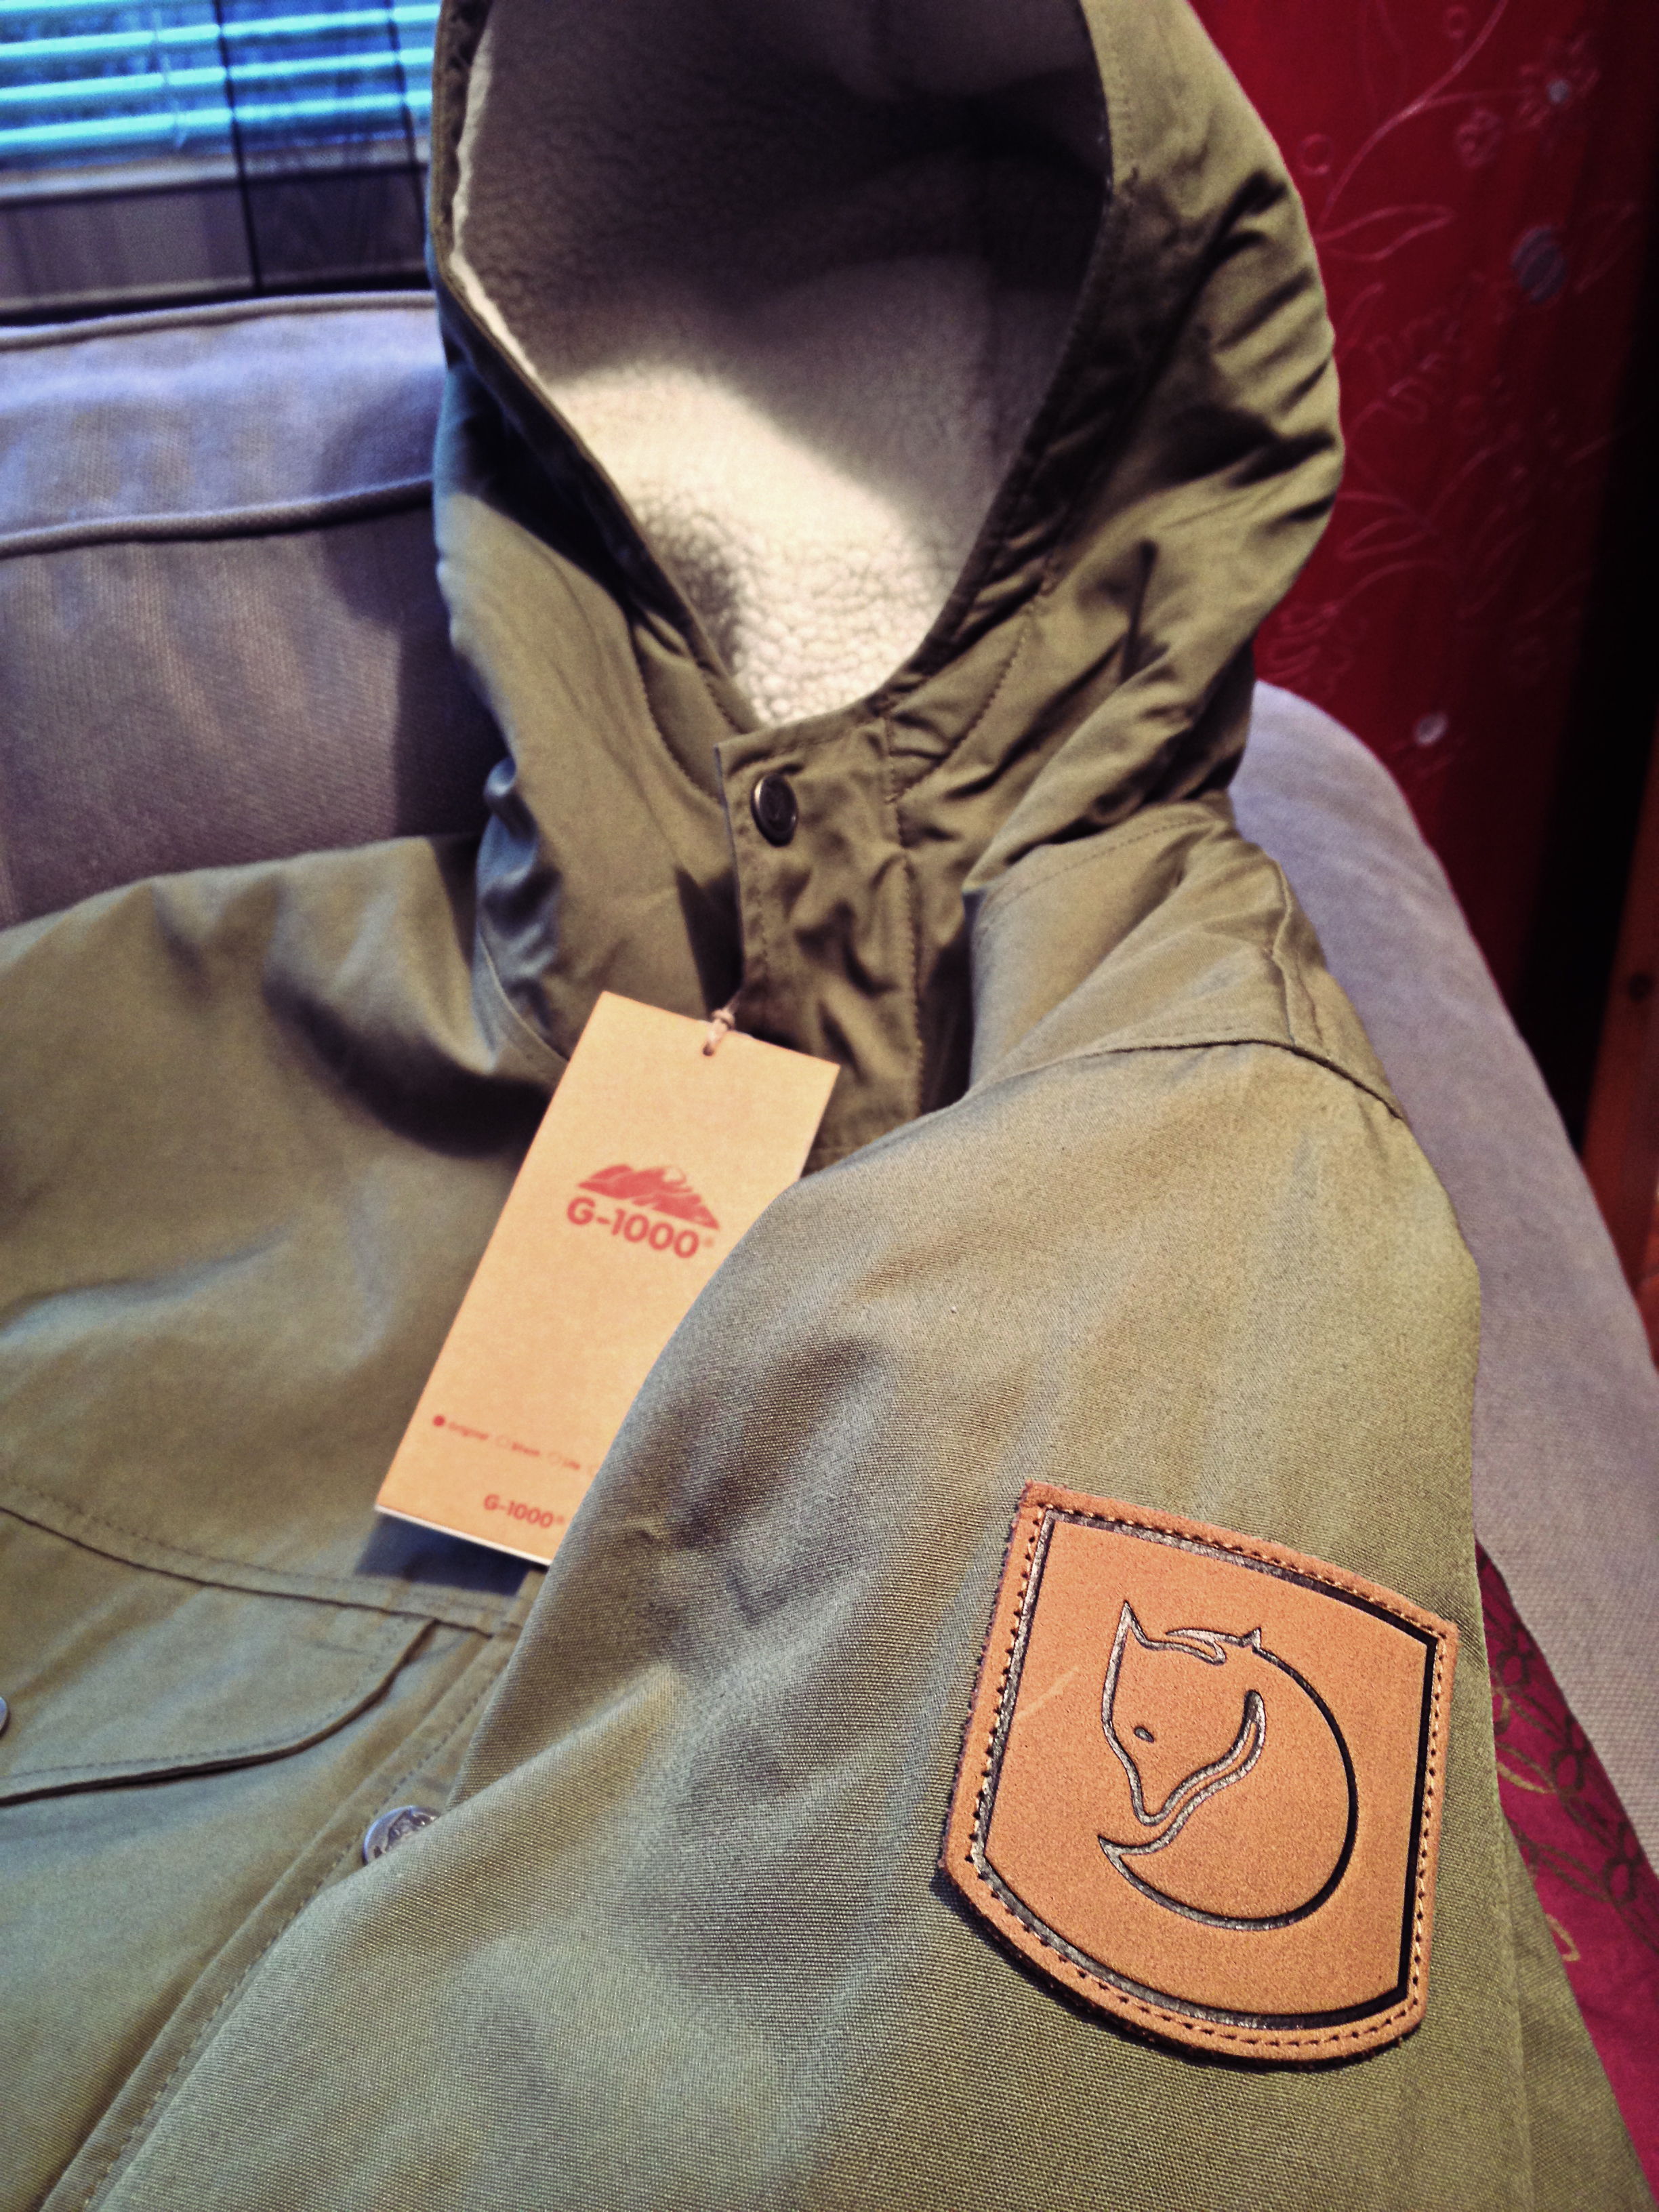 Köp den här: http://www.outnorth.se/fjallraven/greenland-womens-winter-jacket-m-green.php